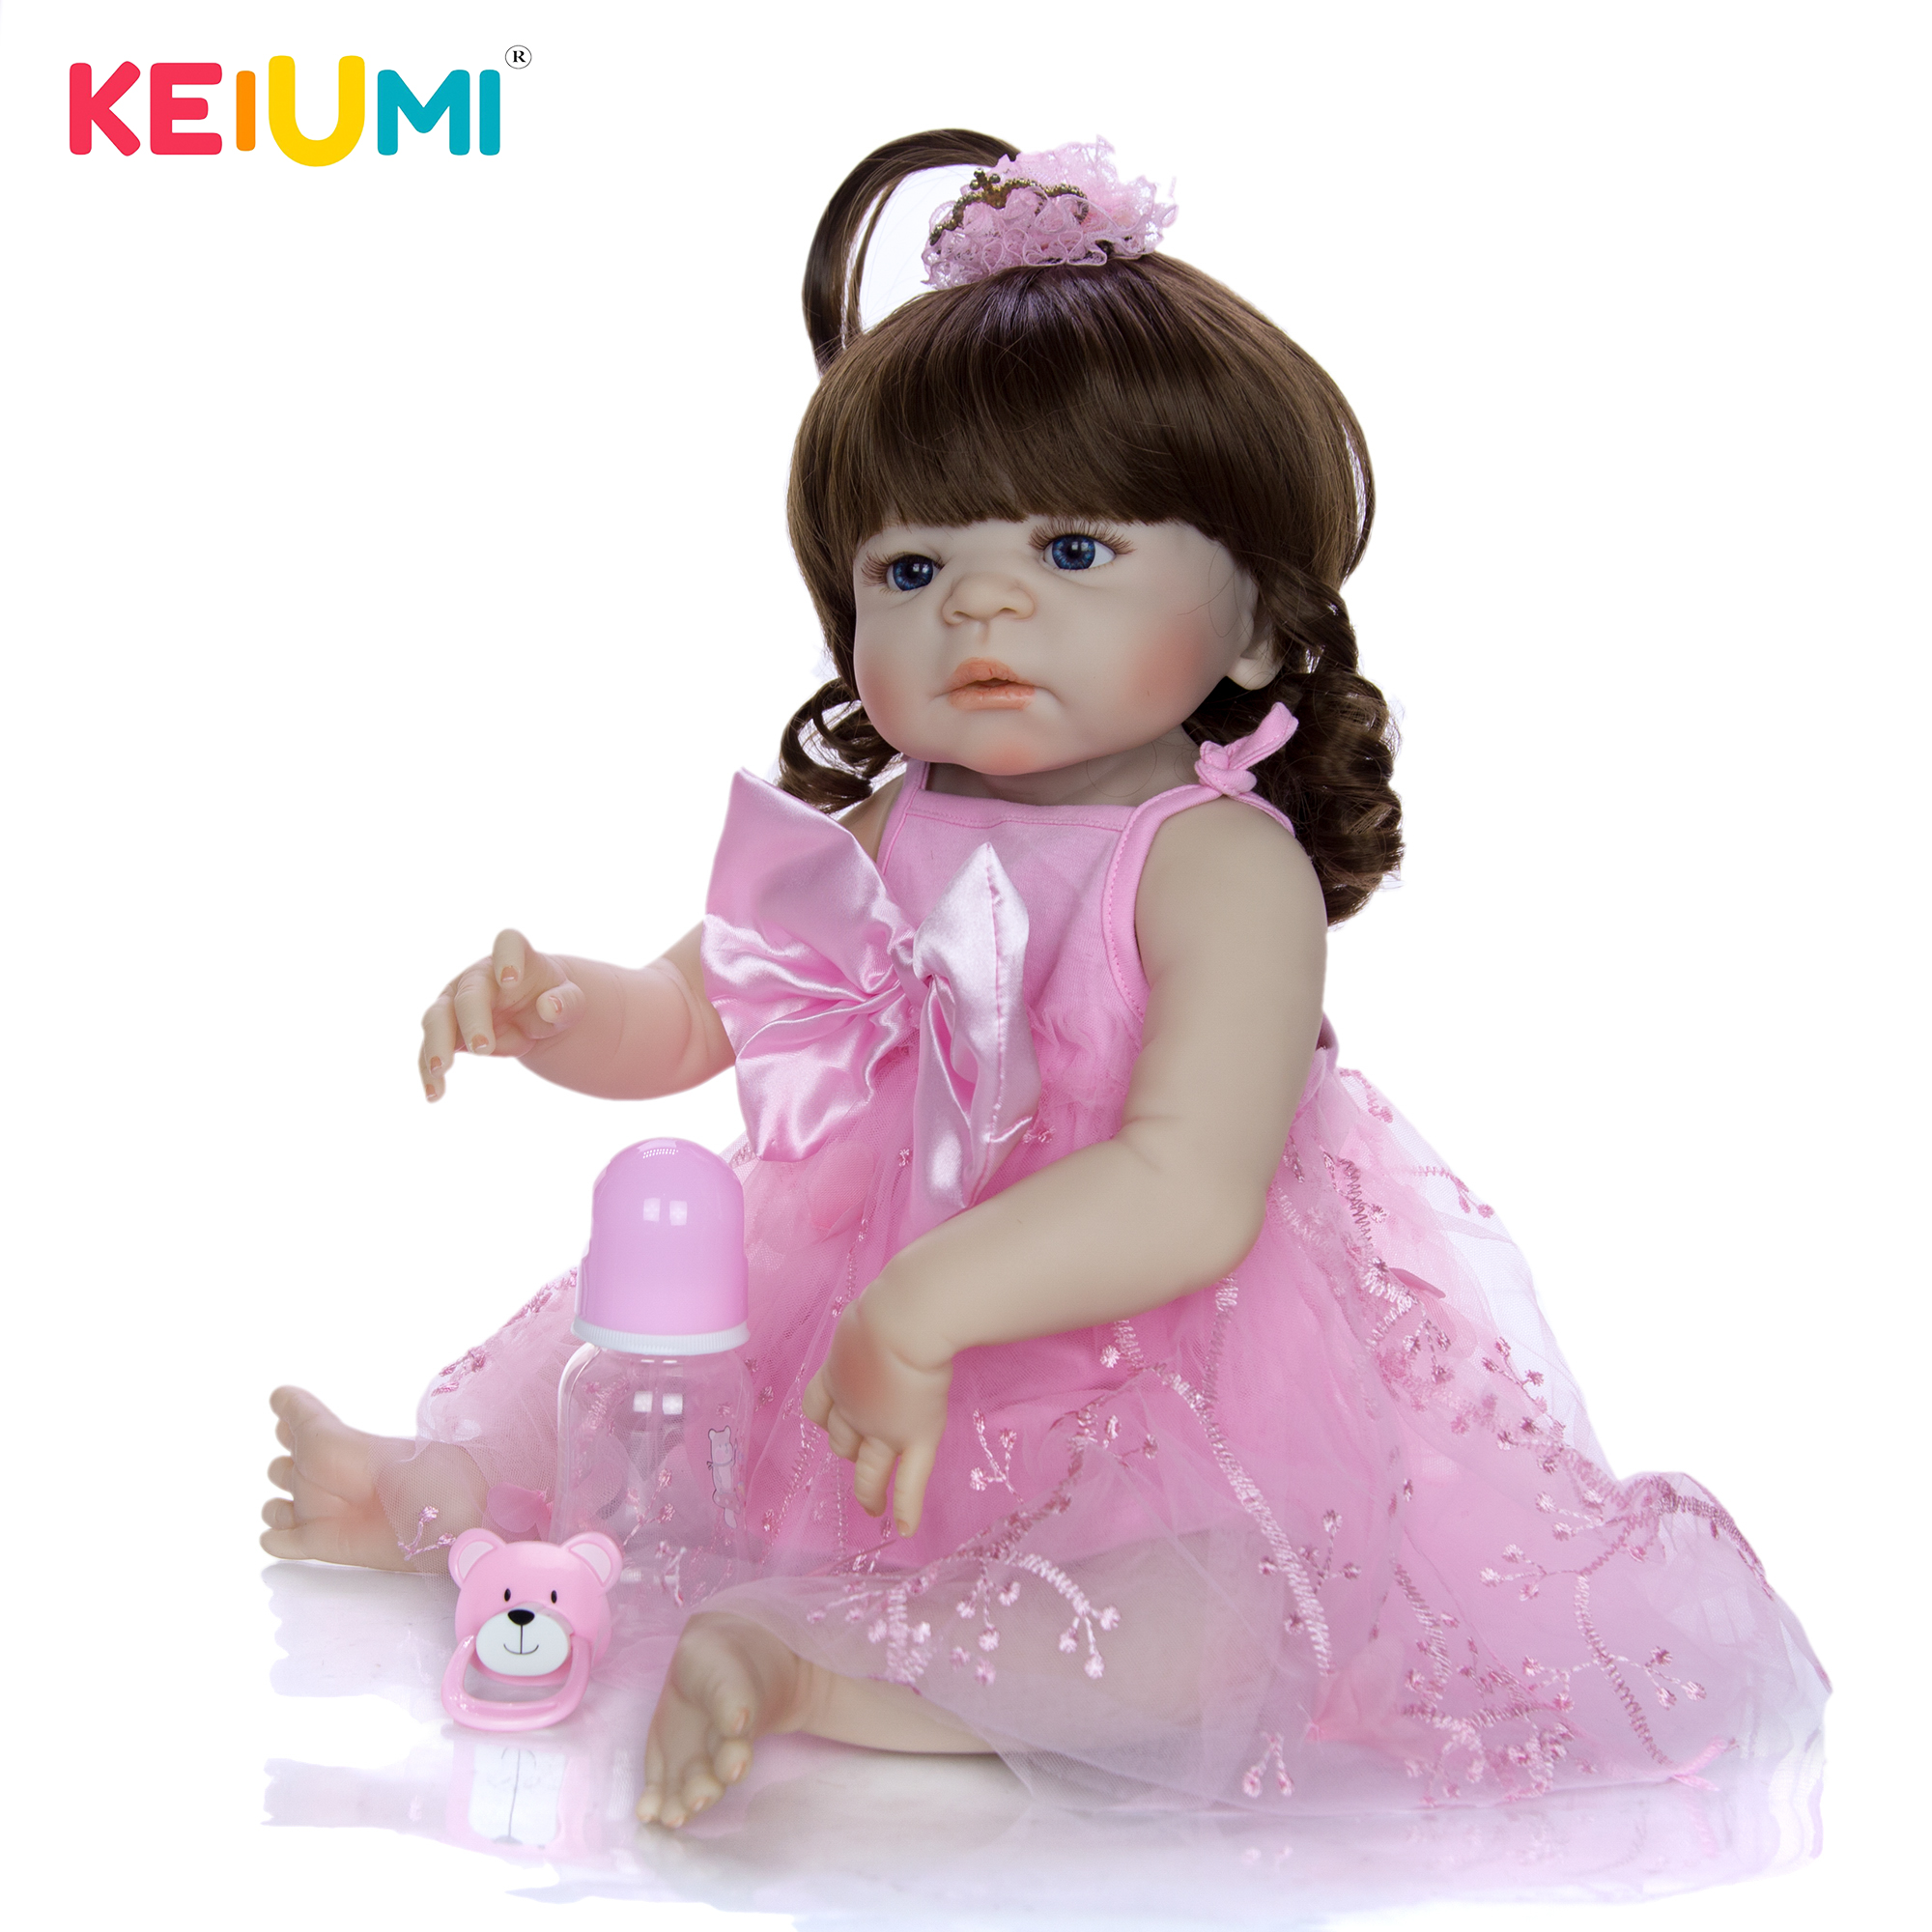 57 cm Reborn Dolls Full Silicone Vinyl 23 Girl Realistic Reborn Babies Toys For Christmas Gifts